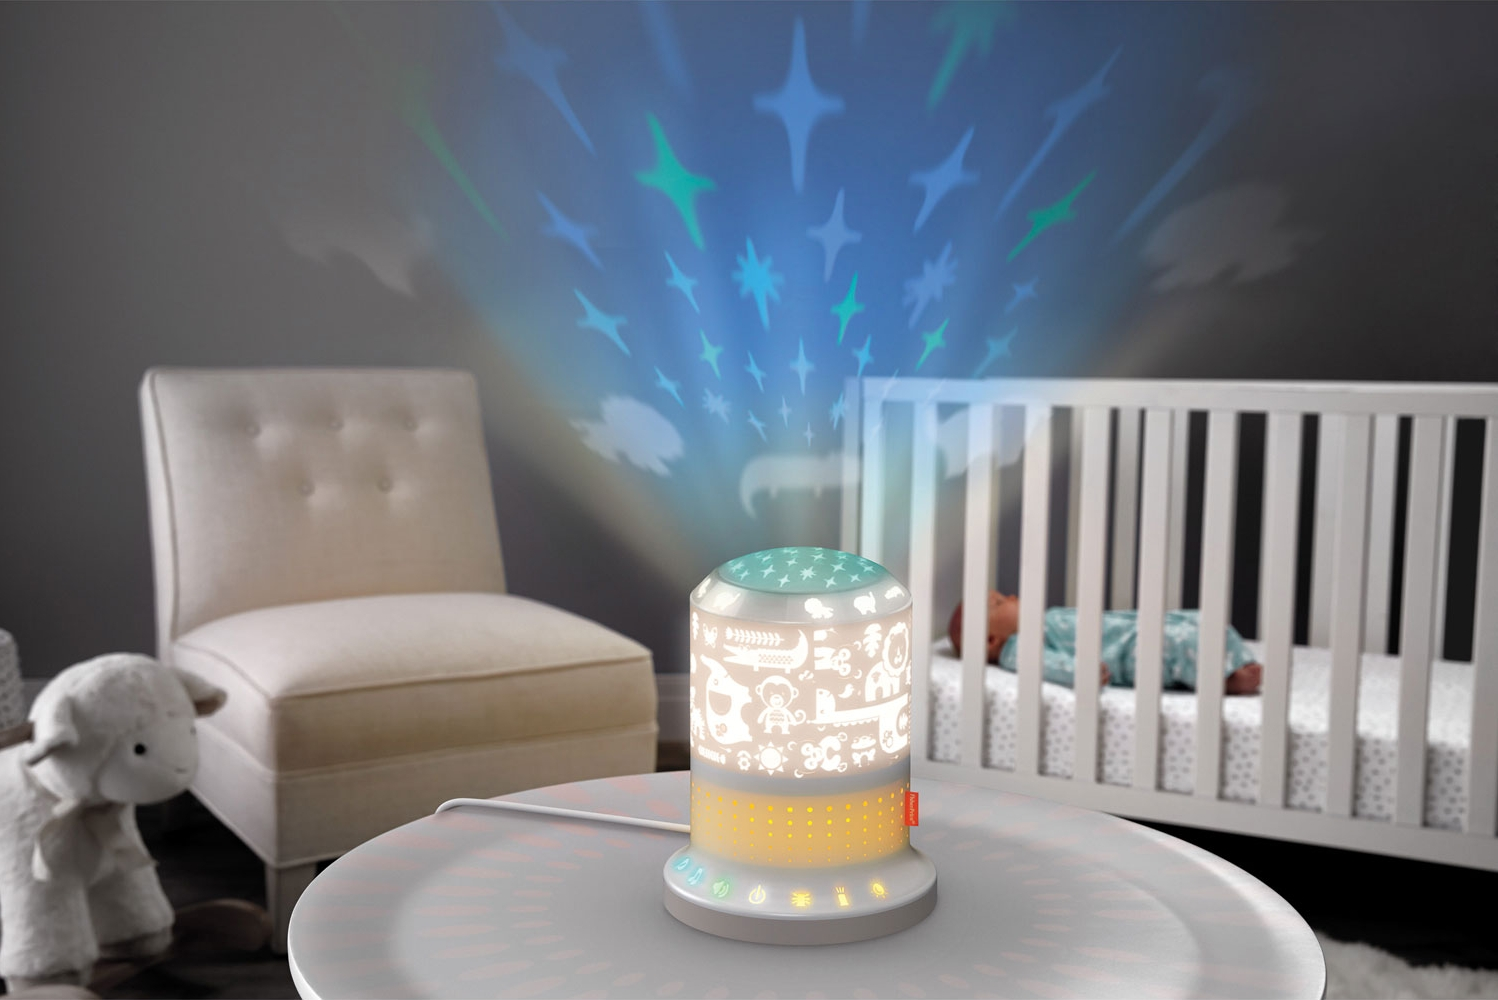 Projecteur apaisant Smart Connect de Fisher-Price